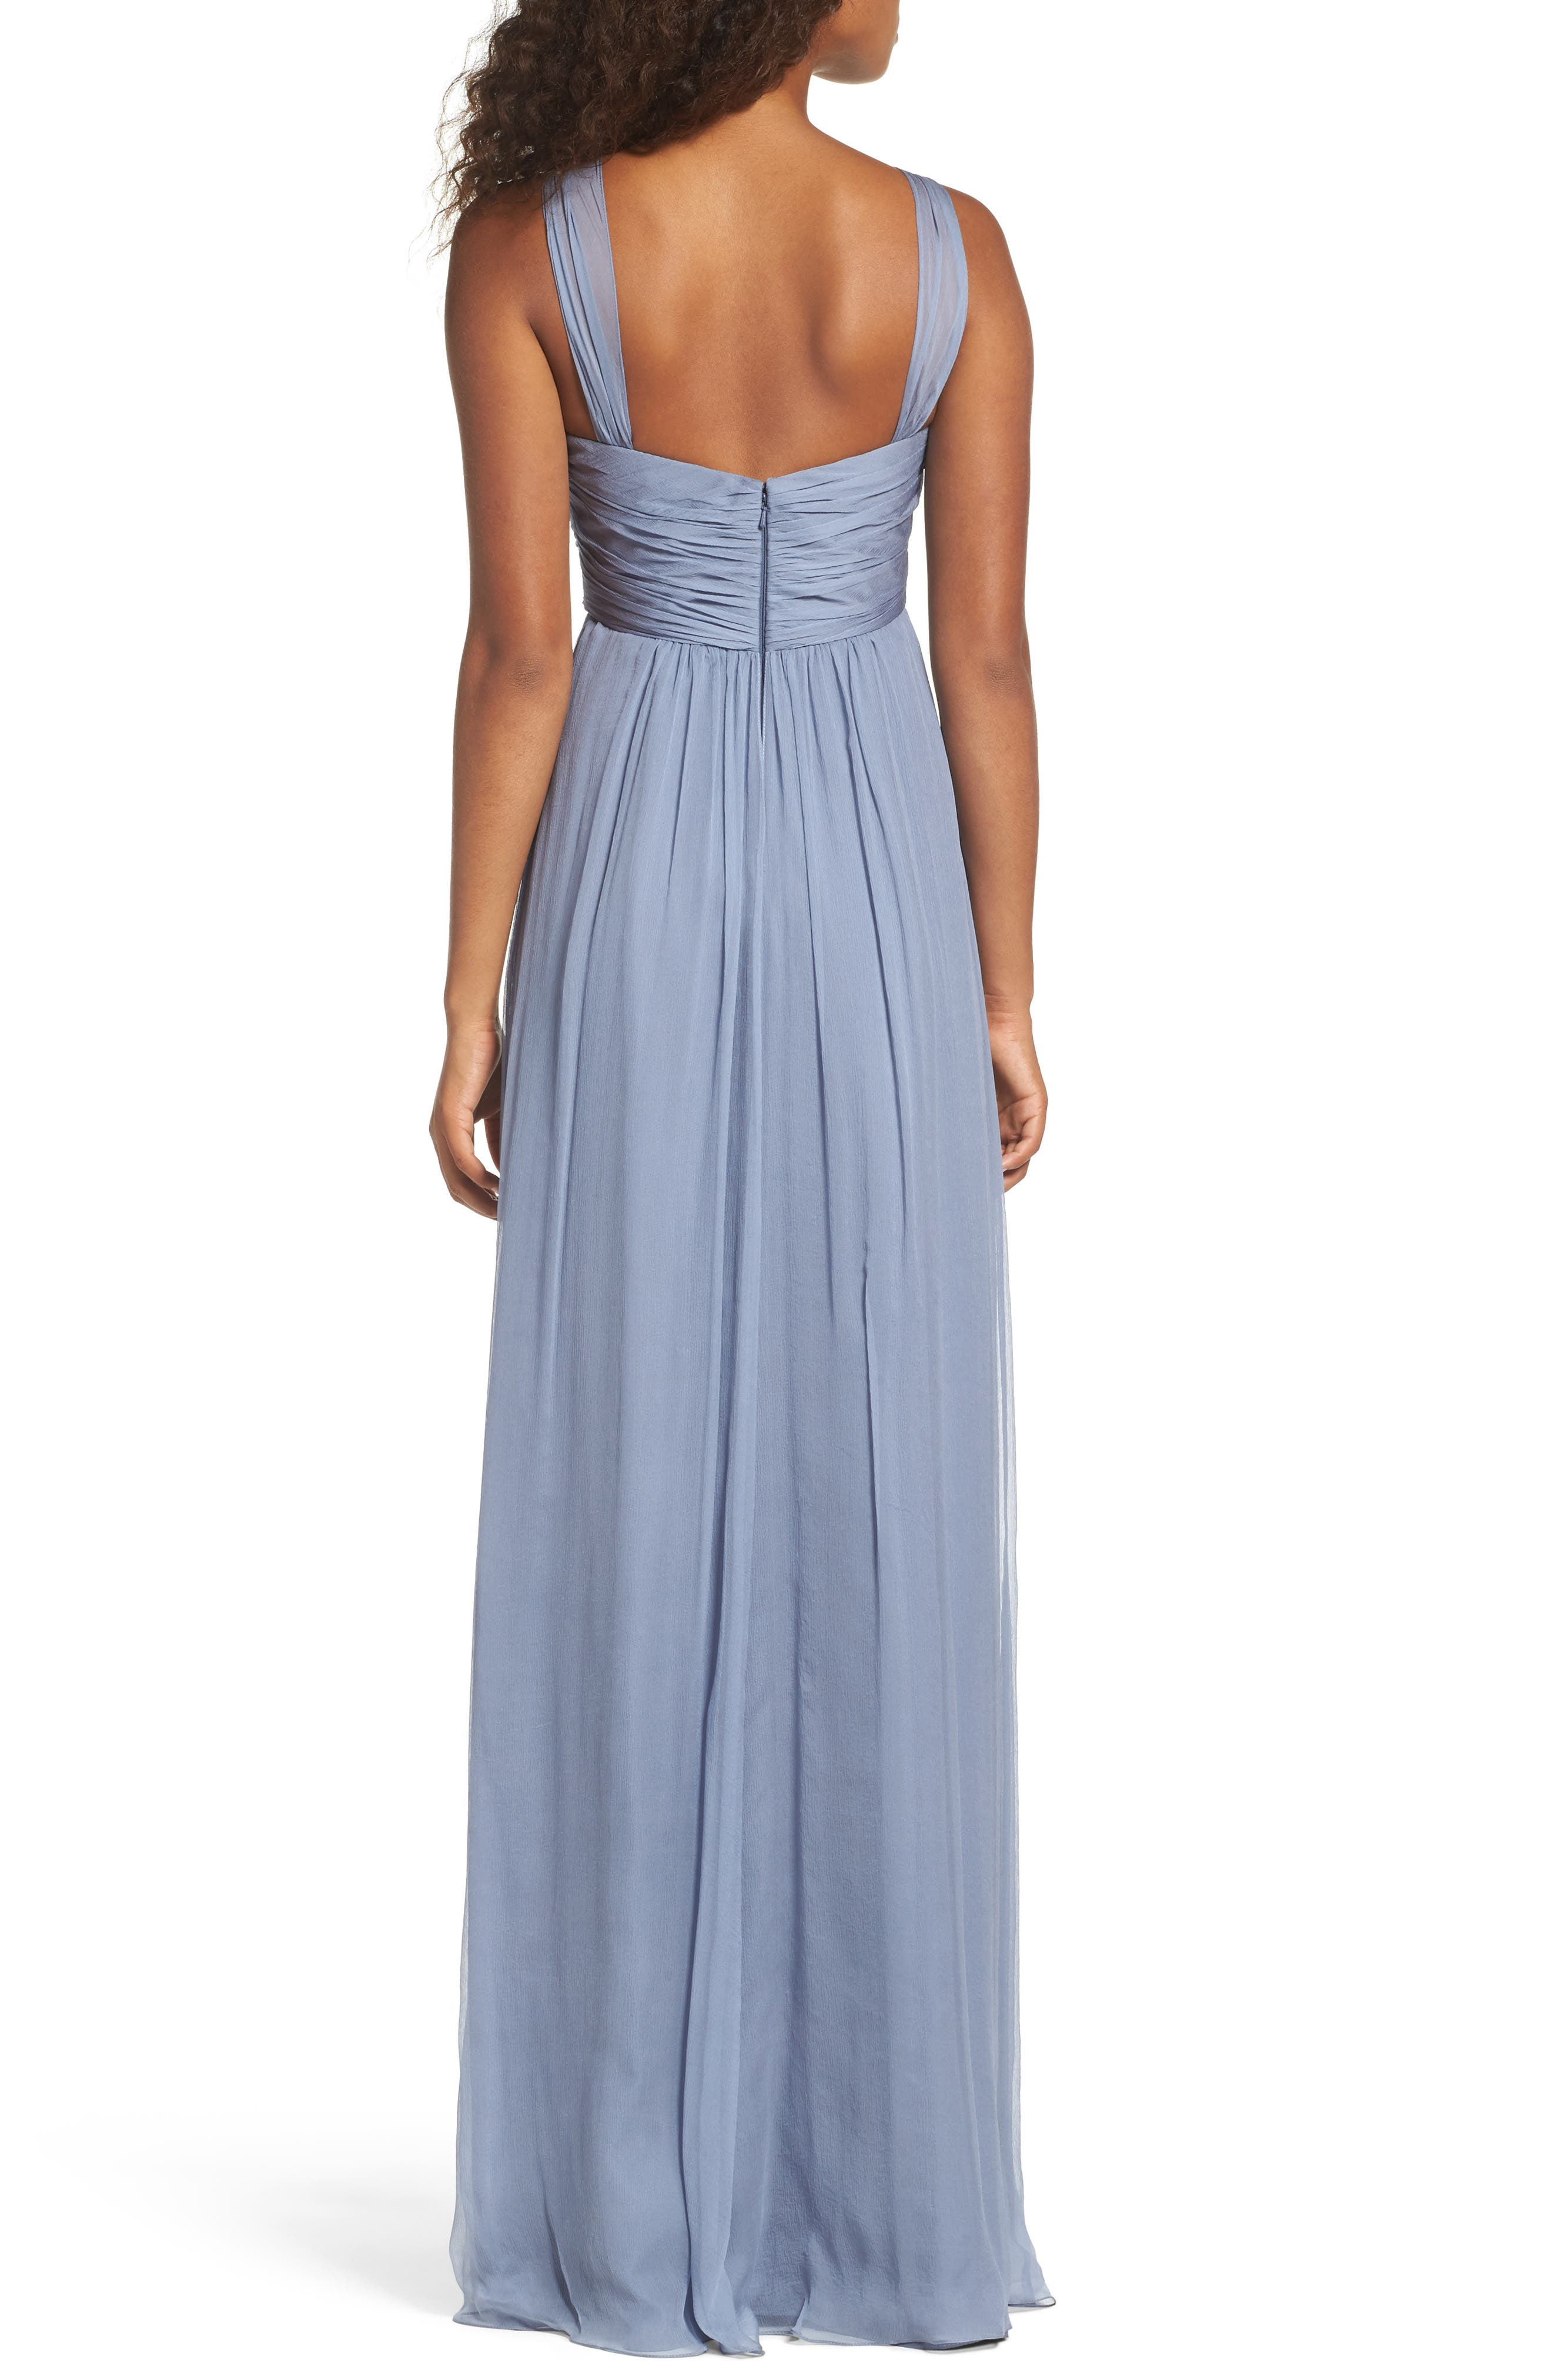 Corbin Crinkled Chiffon Empire Gown,                             Alternate thumbnail 3, color,